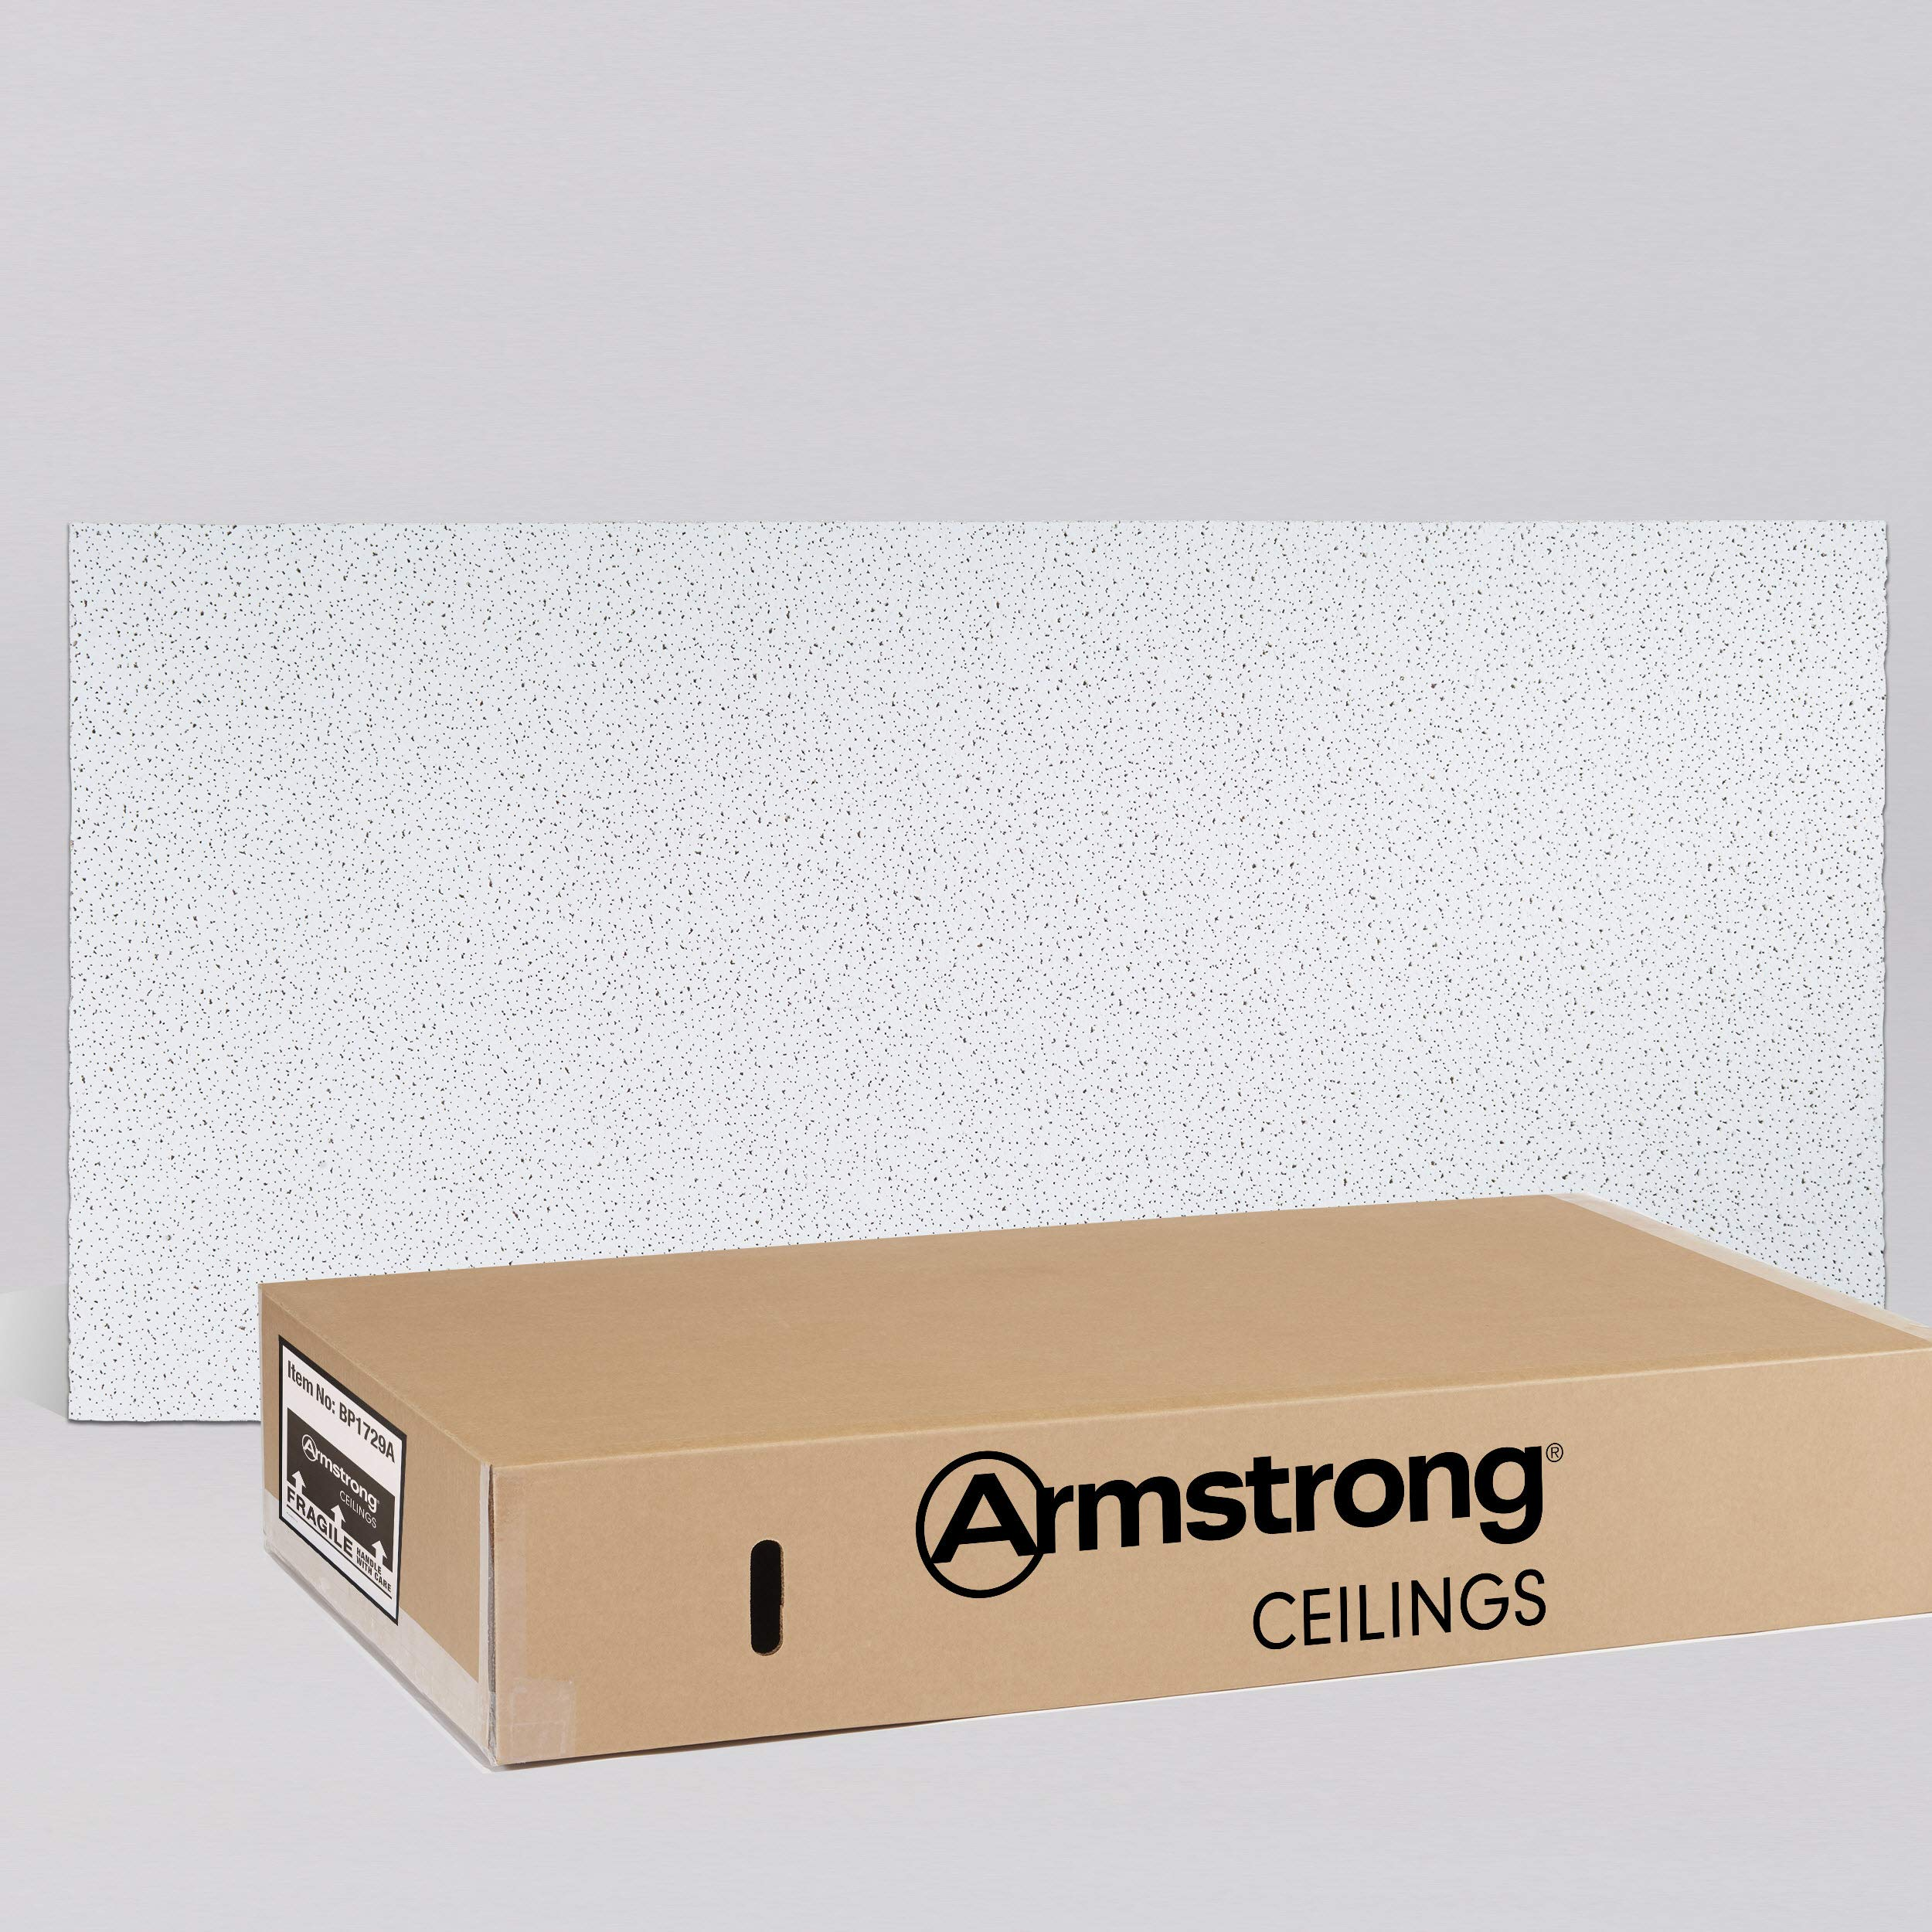 Armstrong Ceiling Tiles; 2x4 Ceiling Tiles - HUMIGUARD Plus Acoustic Ceilings for Suspended Ceiling Grid; Drop Ceiling Tiles Direct from the Manufacturer; FINE FISSURED Item 1729 - 12 pc White Layin